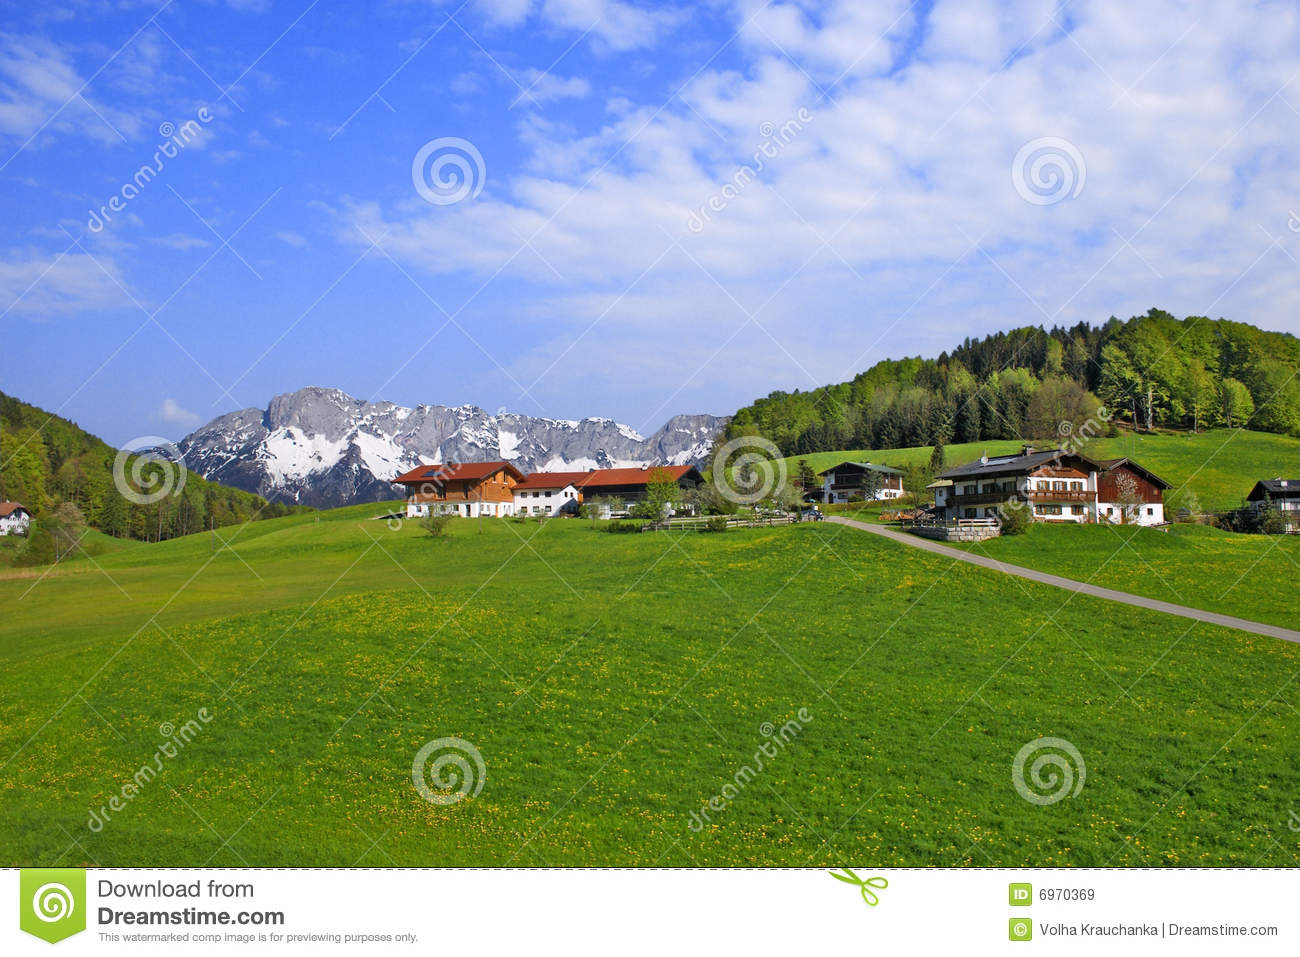 Landscape with farmer houses